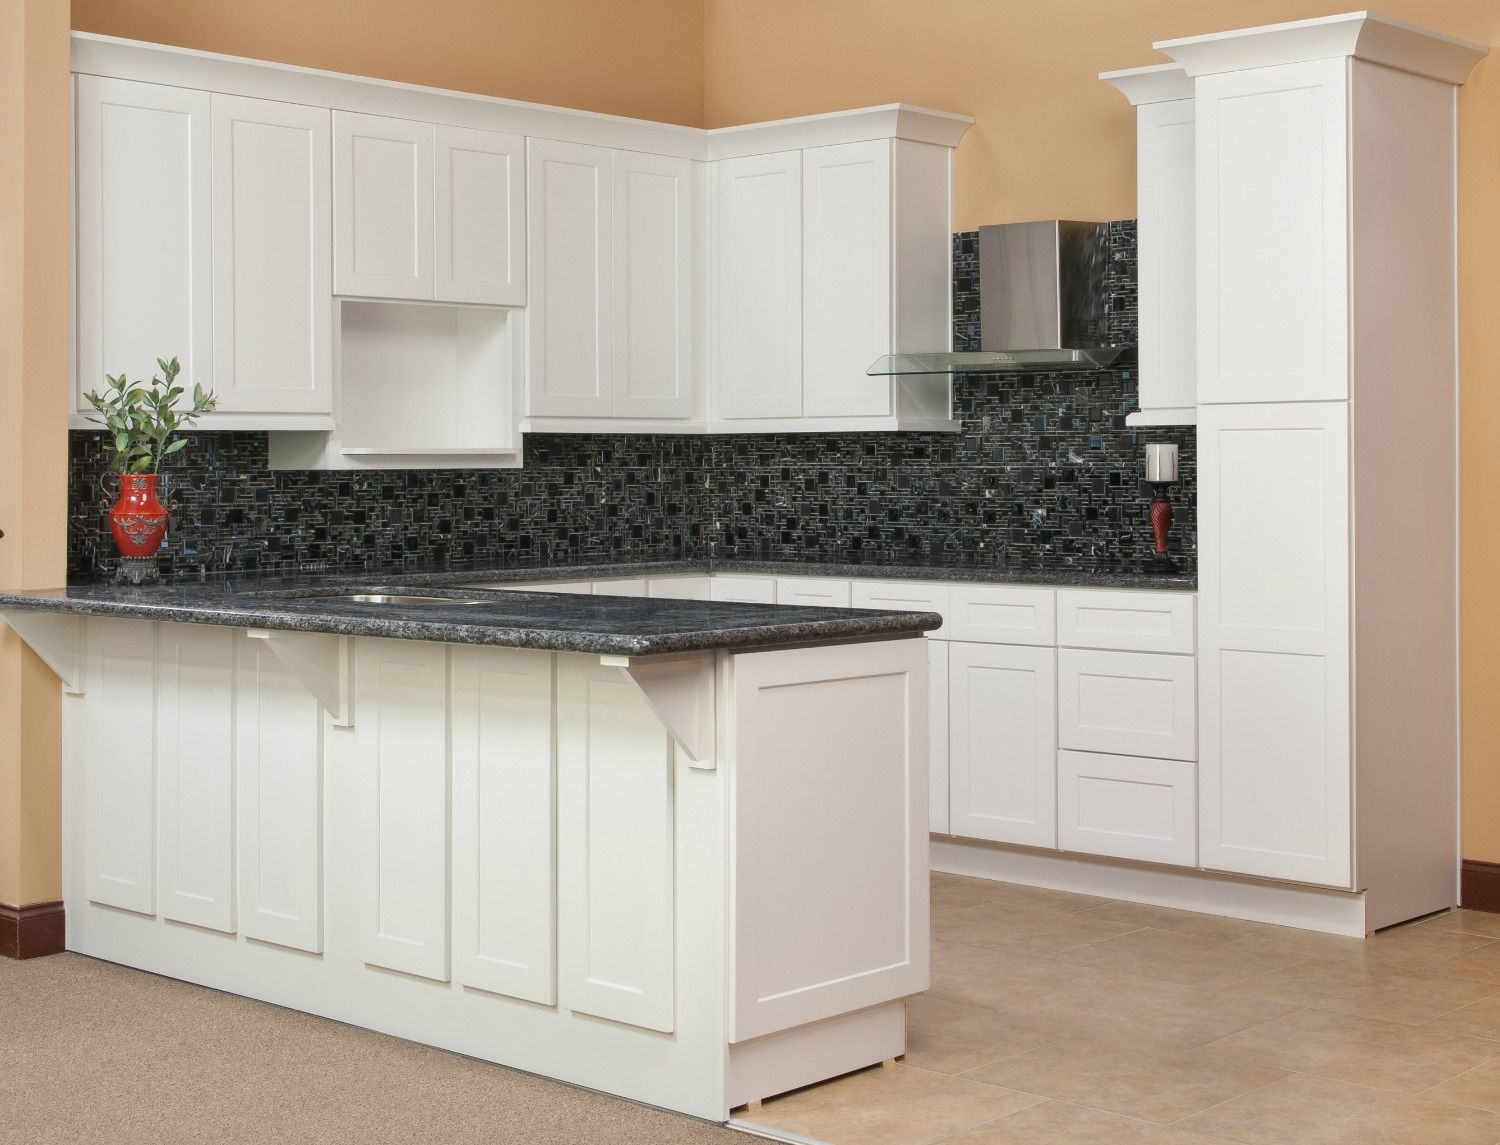 Kitchen of the day brilliant white shaker rta kitchen for White kitchen cabinets